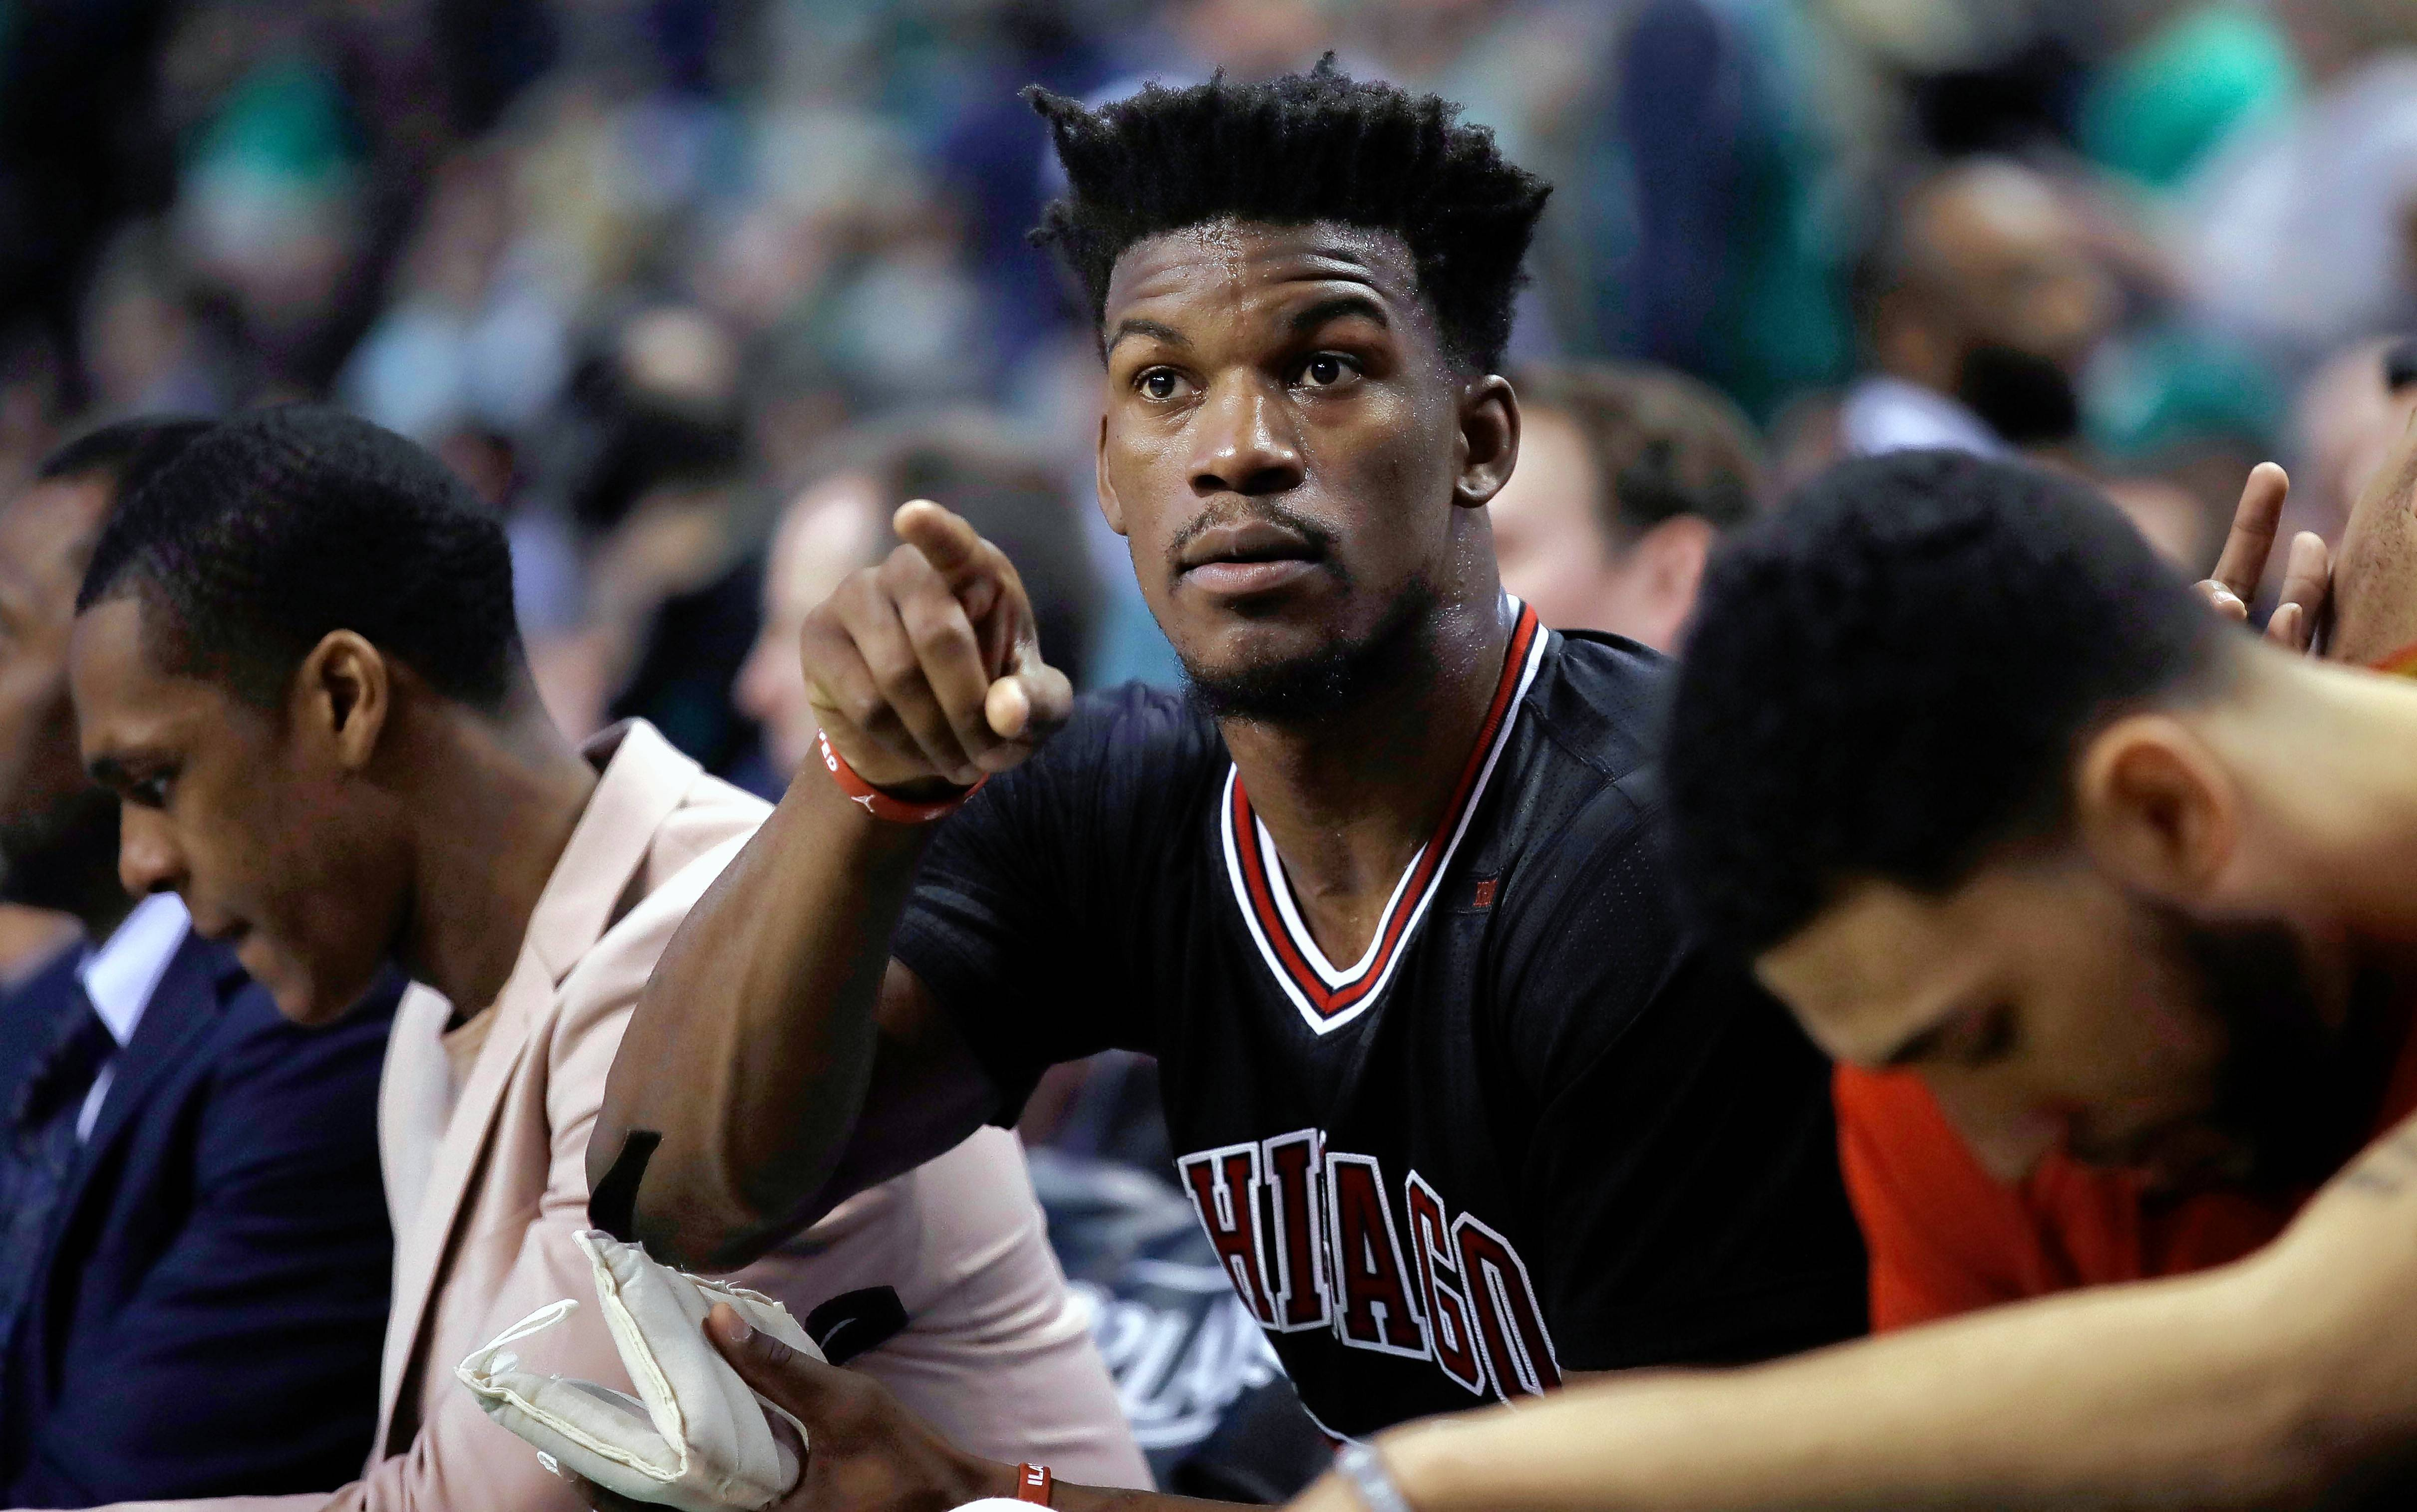 Chicago Bulls forward Jimmy Butler earned a spot on the All-NBA Third Team with his play this season.